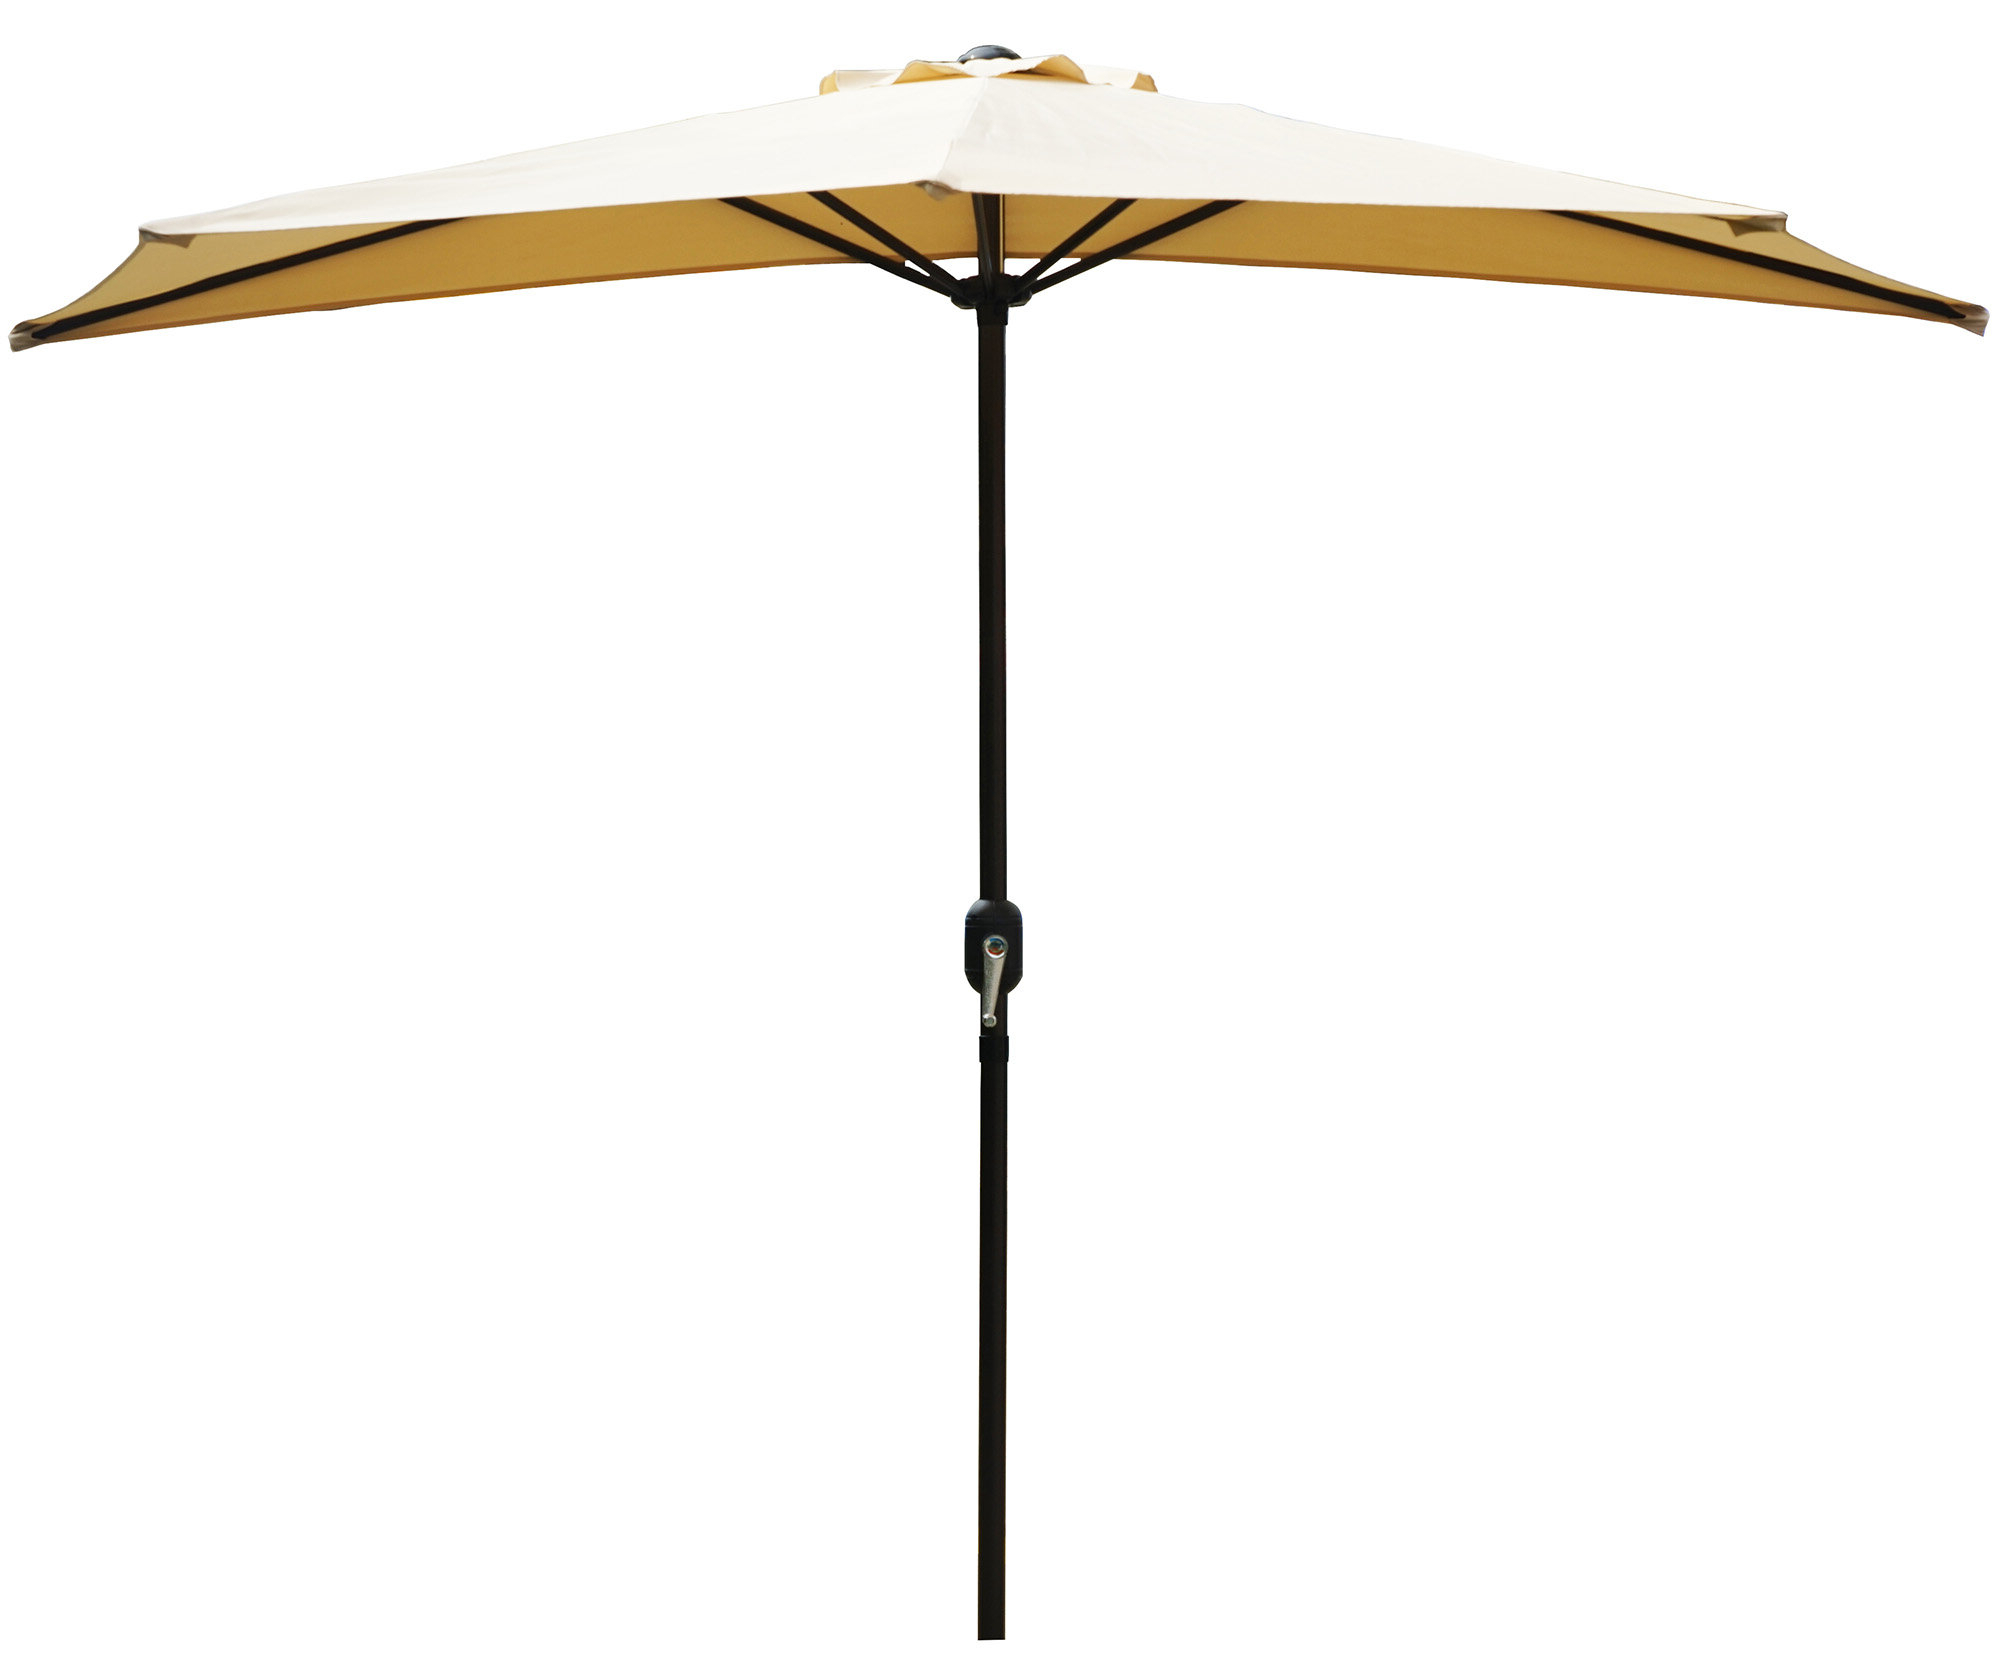 Widely Used Alder 9' Half Round Outdoor Patio Market Umbrella Pertaining To Half Round Market Umbrellas (View 3 of 20)